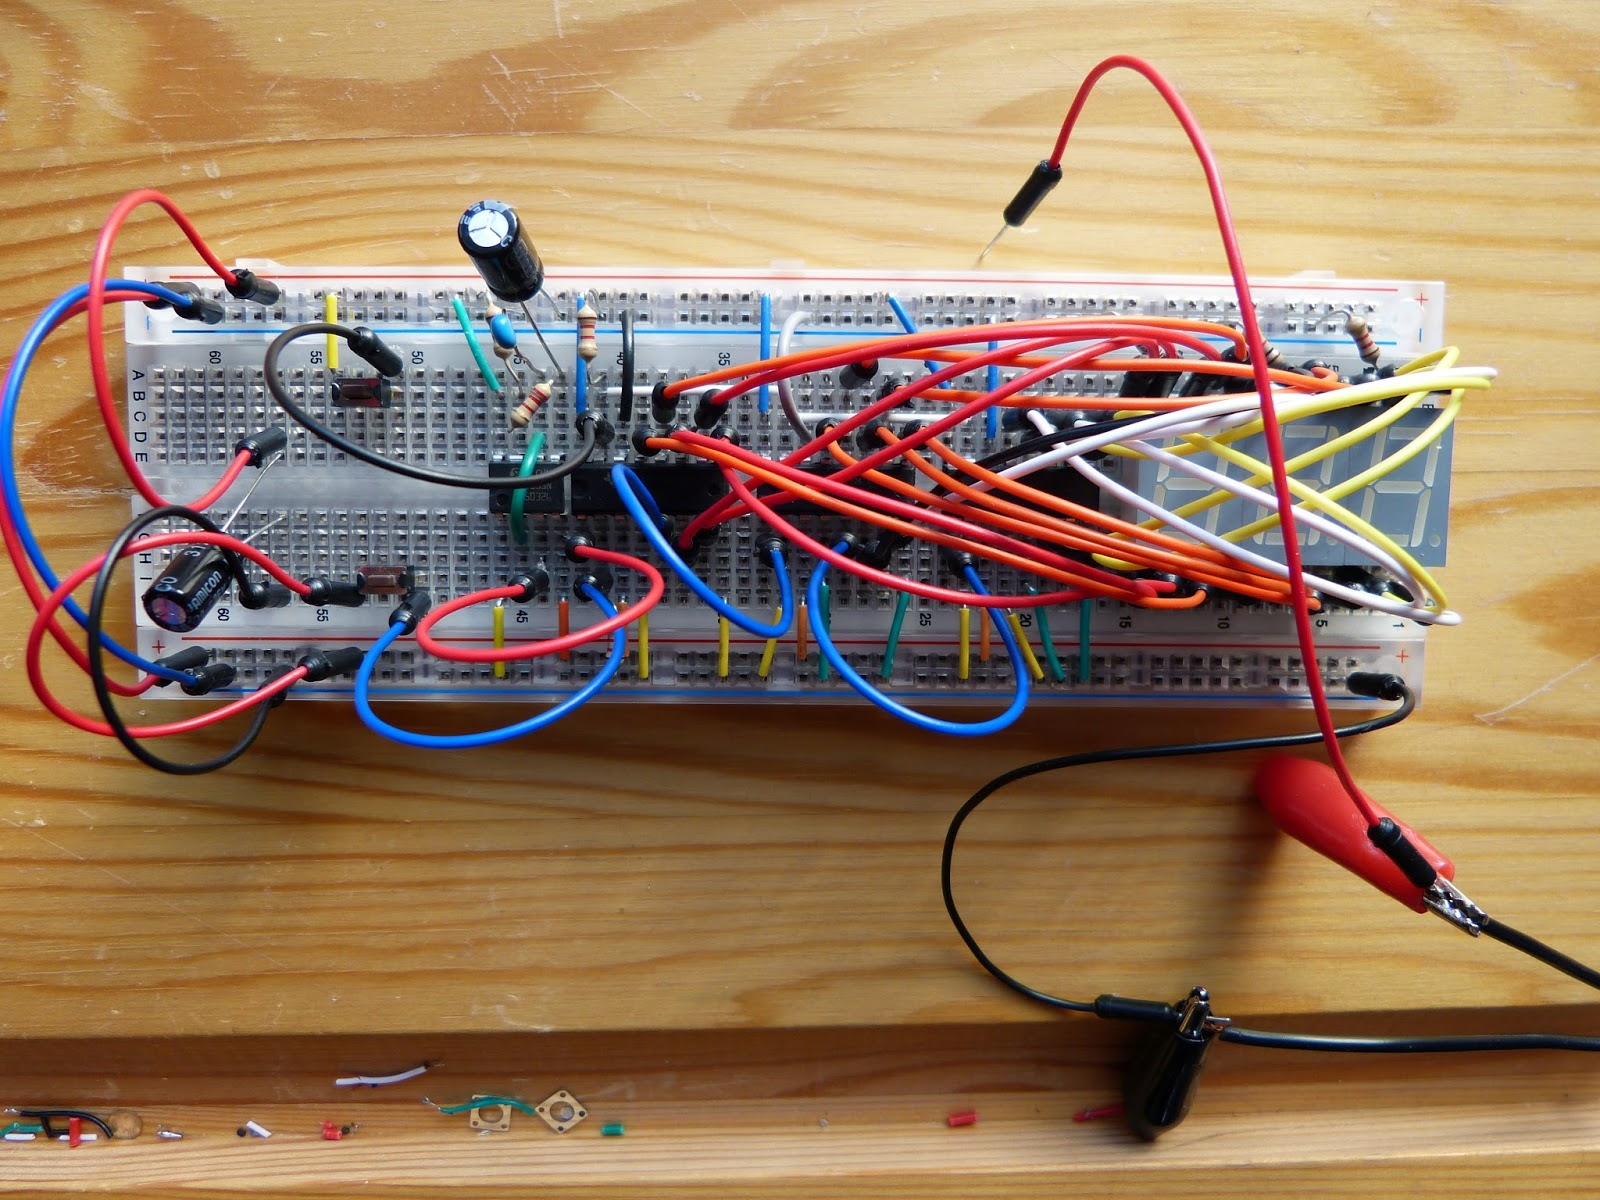 March 2015 555 Bistable Breadboard Basic Toggle Circuit Built On With The Timer Included However Two Capacitors Above Were Exchanged